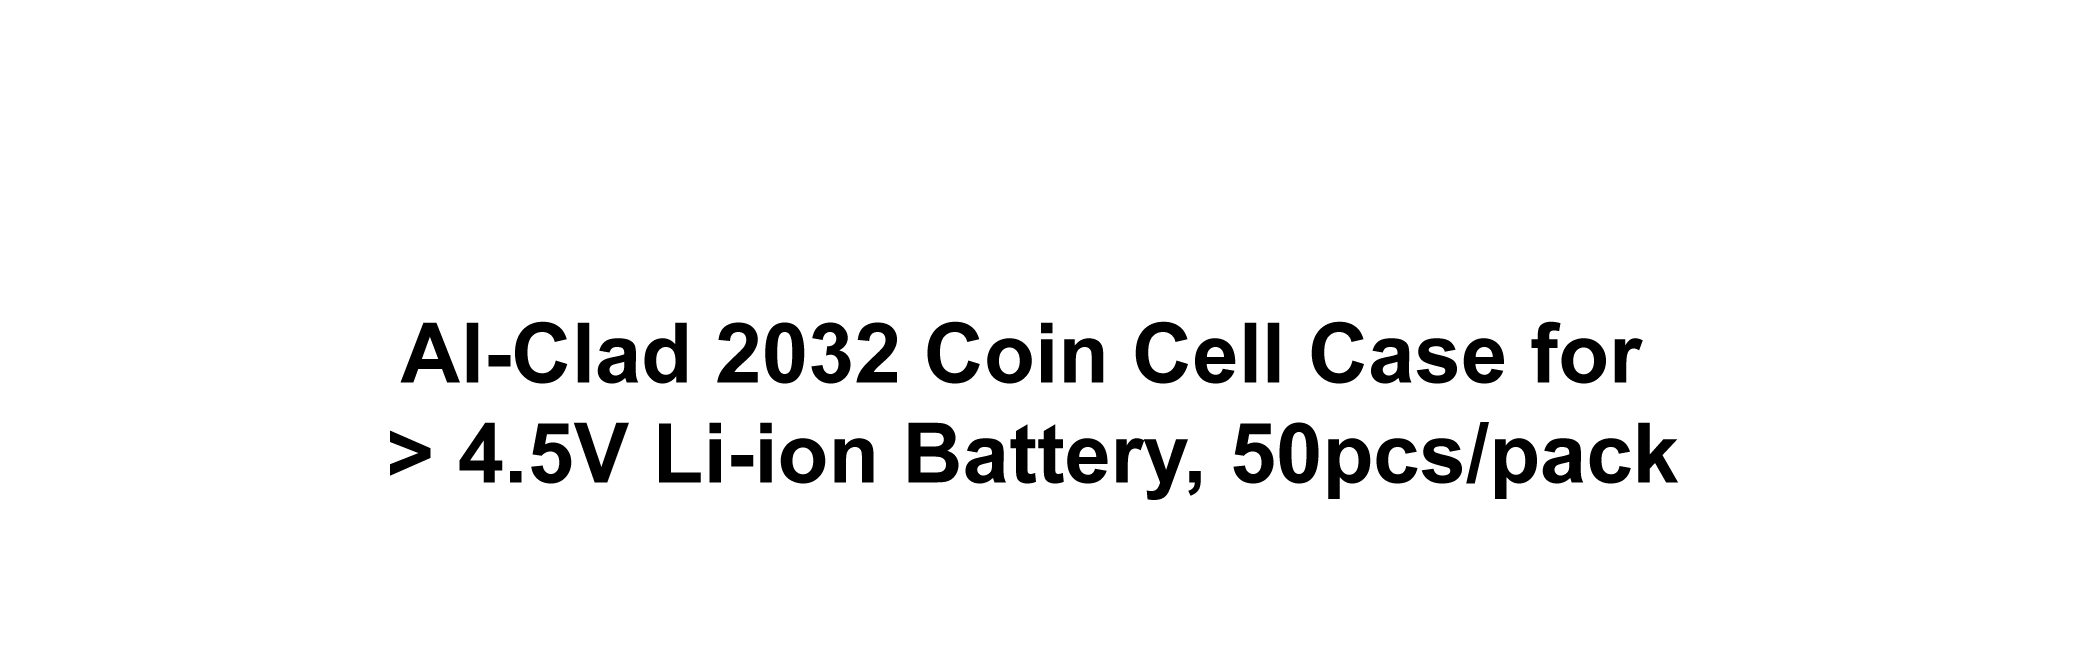 Al-Clad 2032 Coin Cell Case for > 4.5V Li-ion Battery, 50pcs/pack